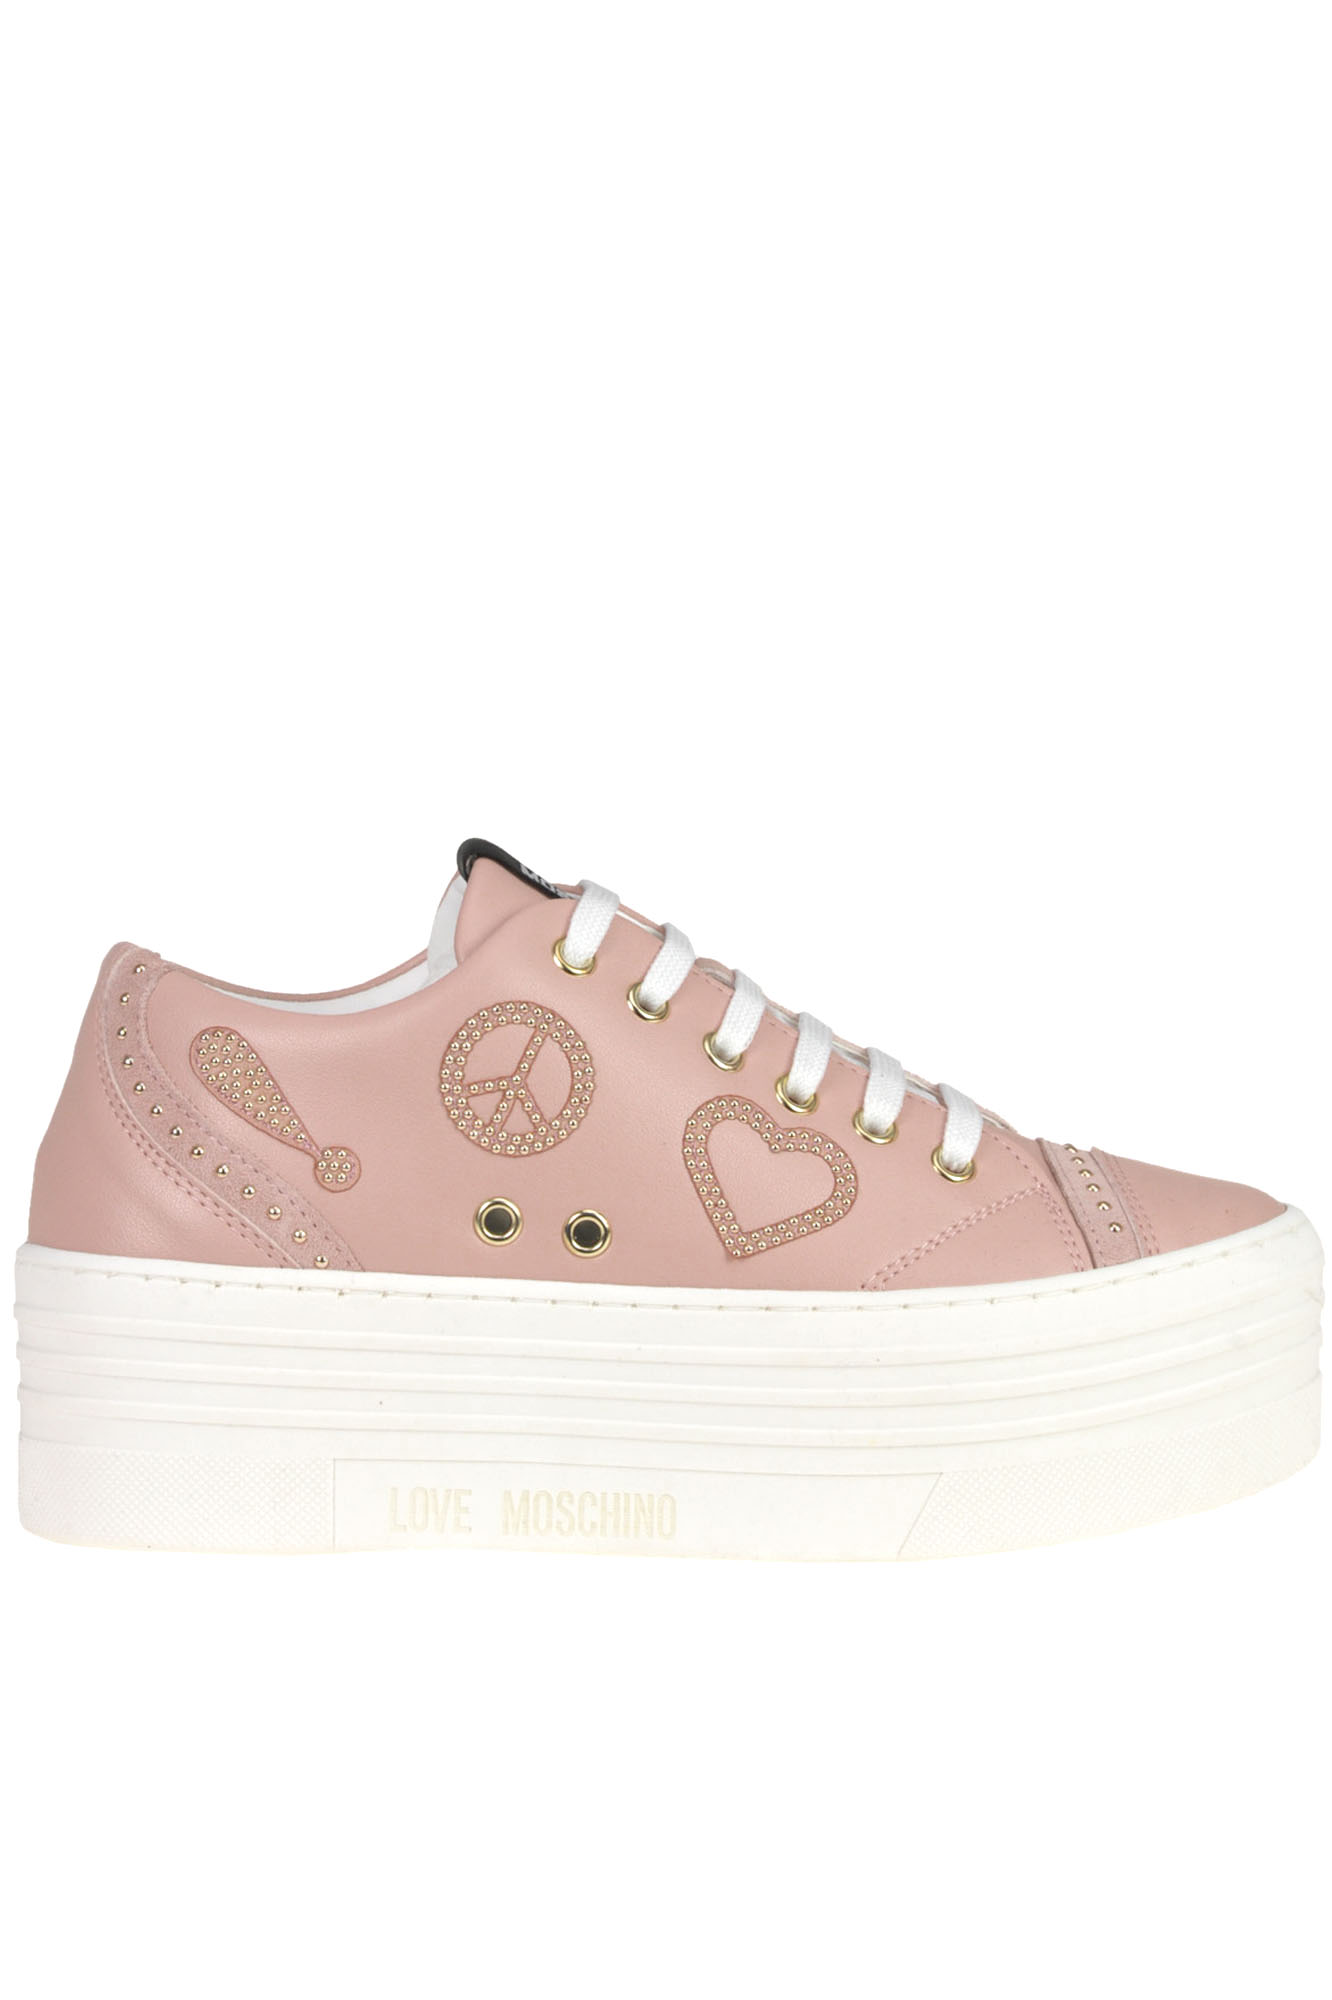 Love Moschino Leather wedge sneakers